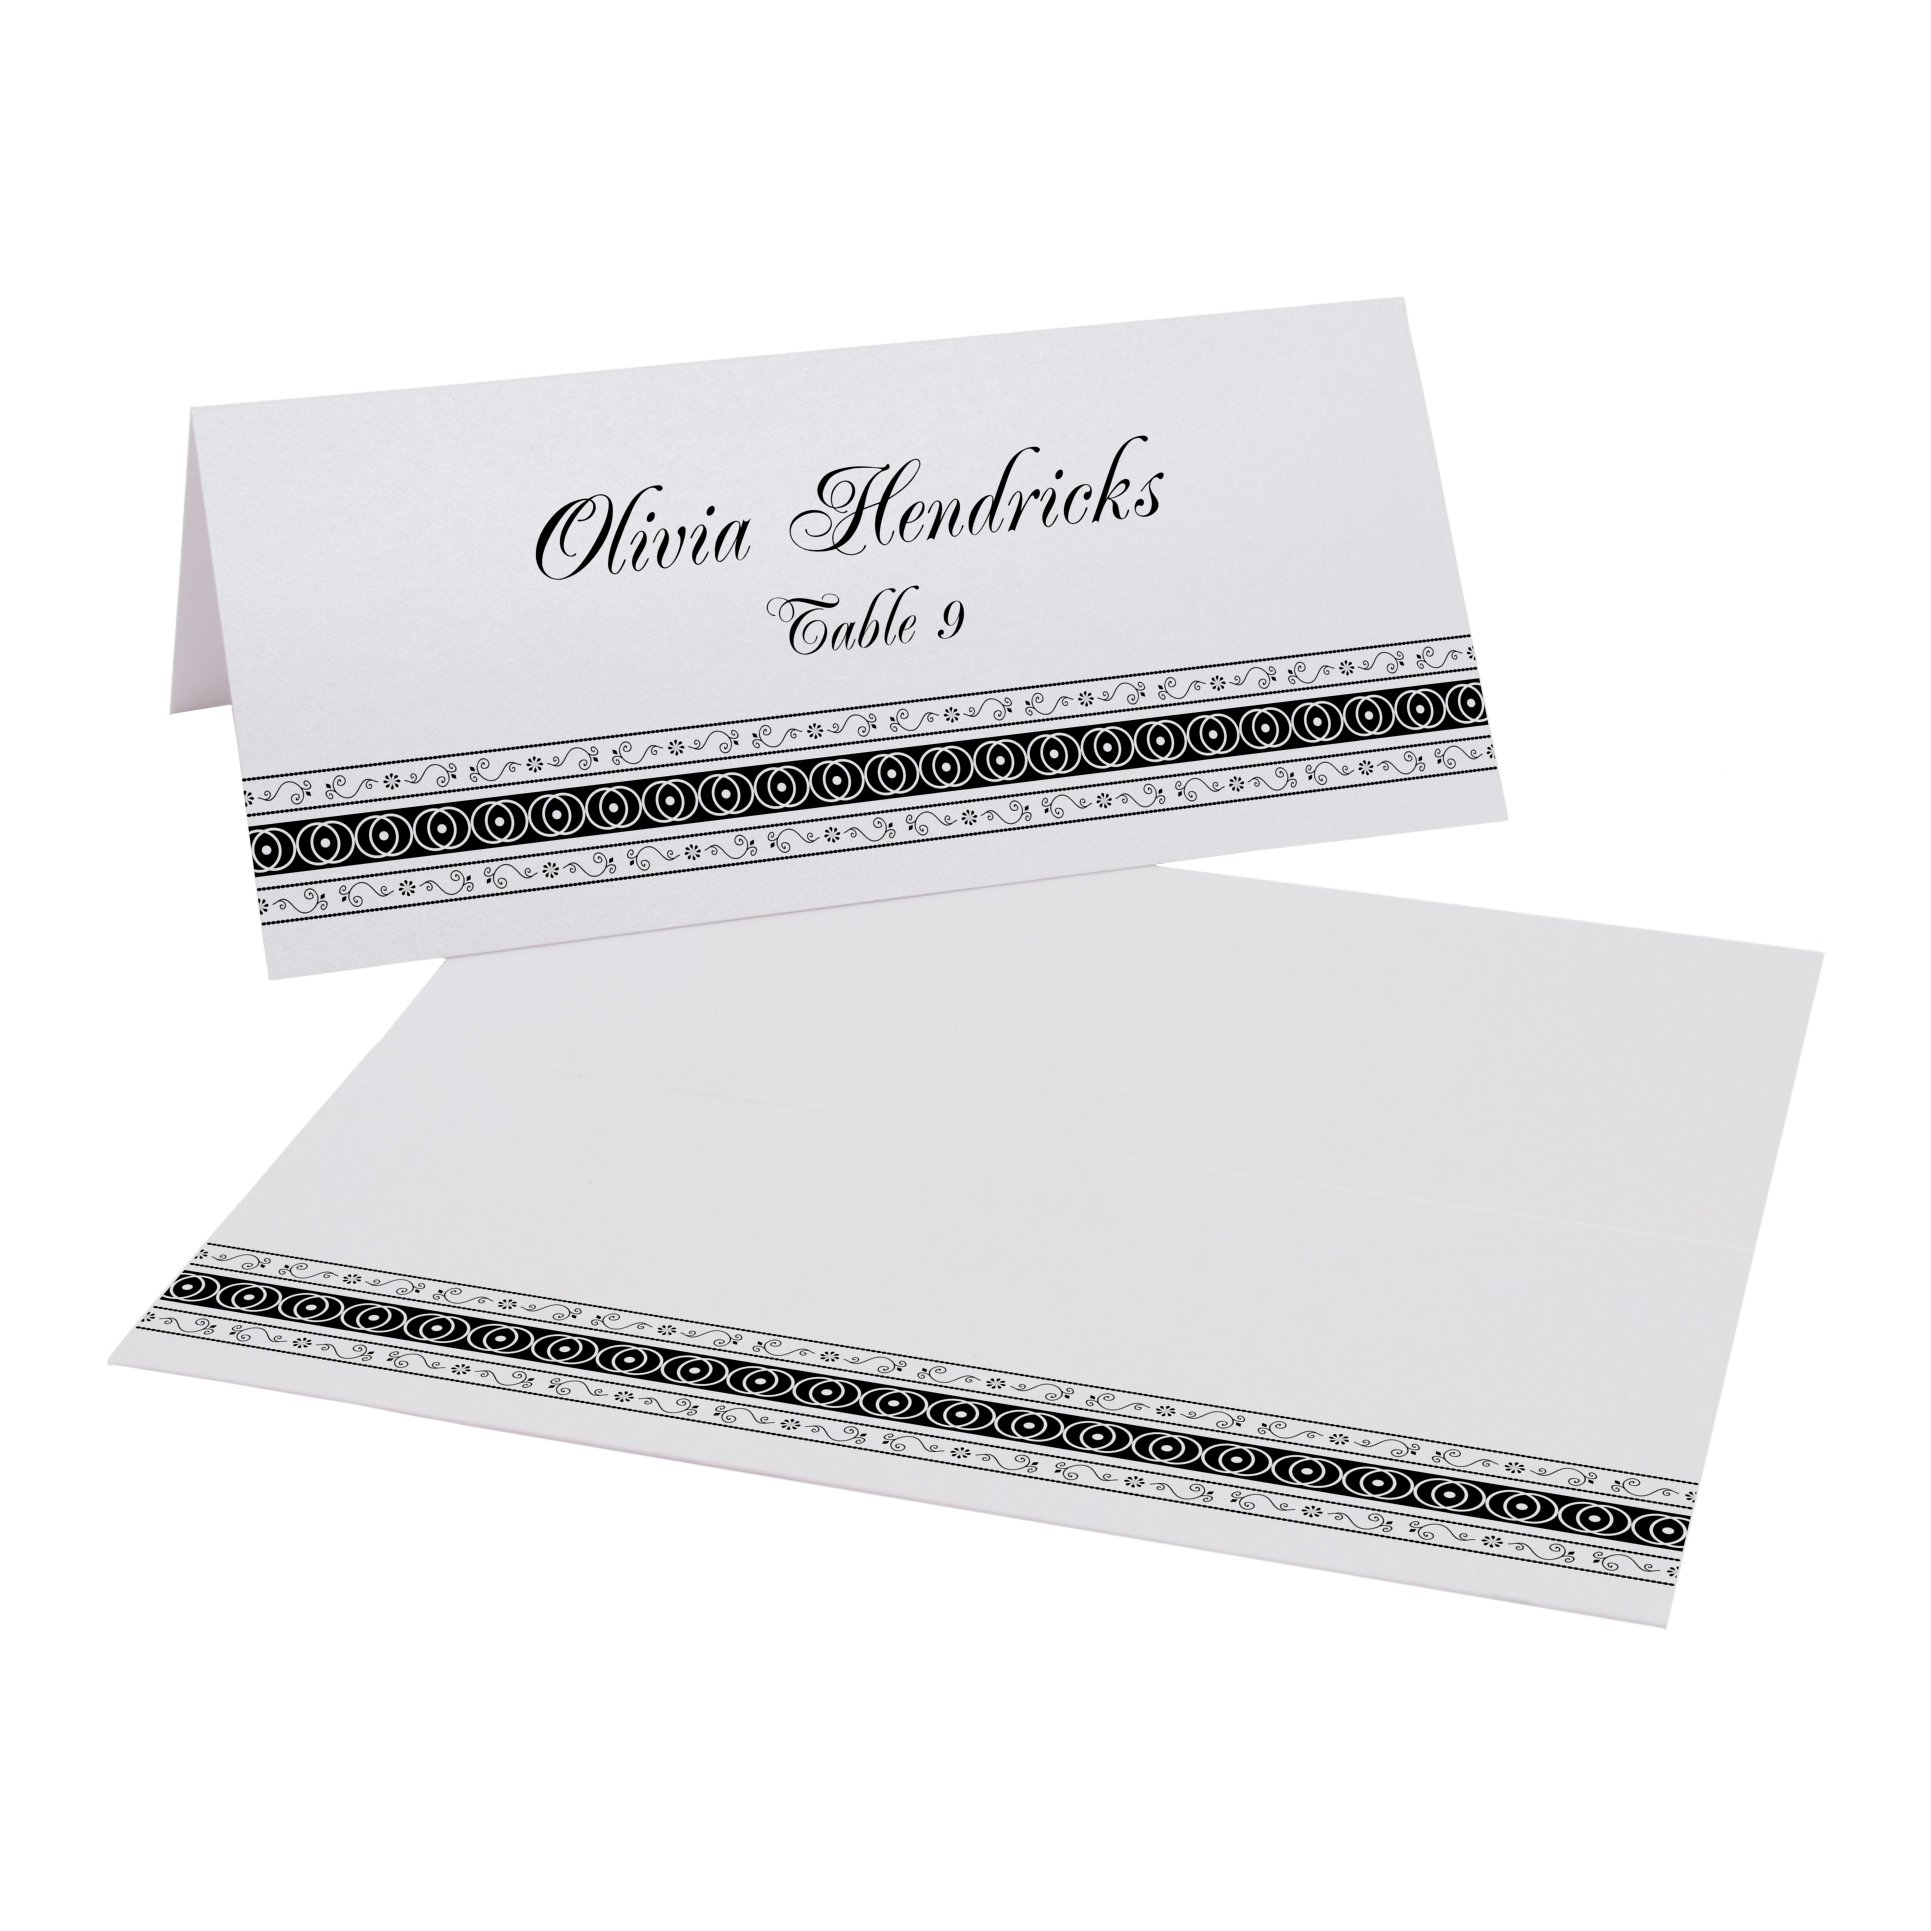 Mumbai Inspired Border Place Cards, Pearl White, Black, Set of 375